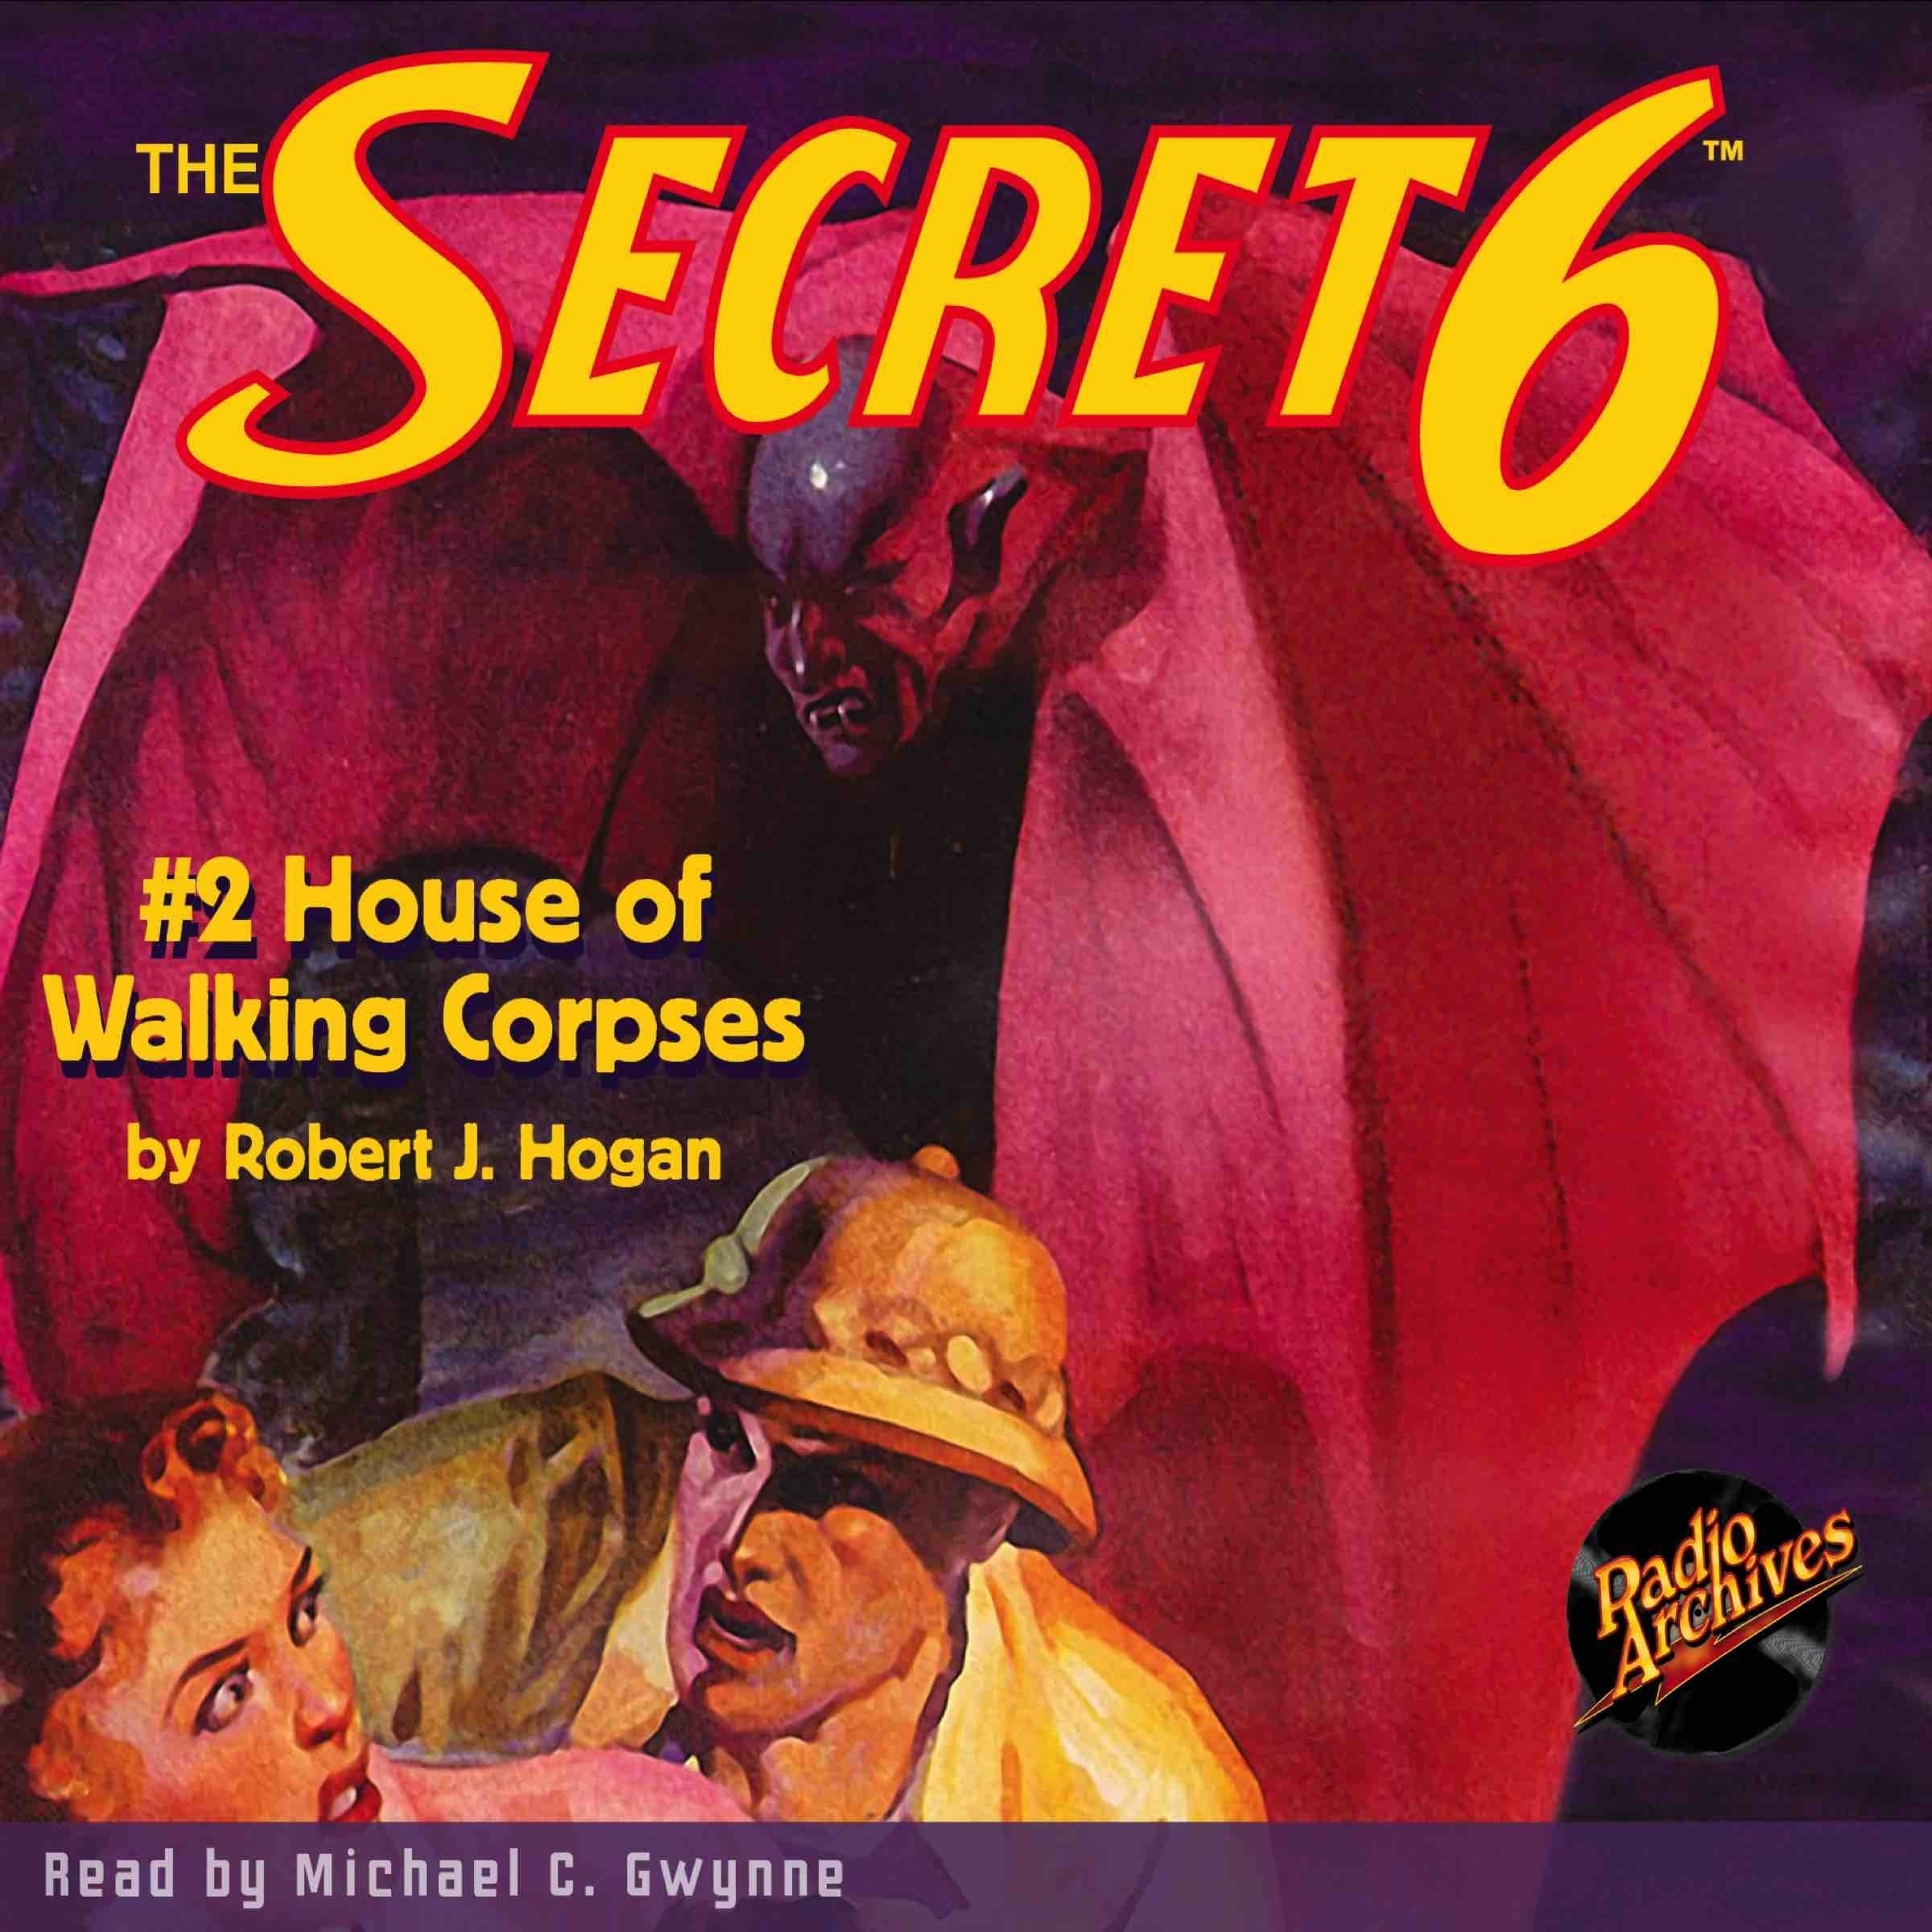 Printable Secret 6 #2, The: House of Walking Corpses Audiobook Cover Art